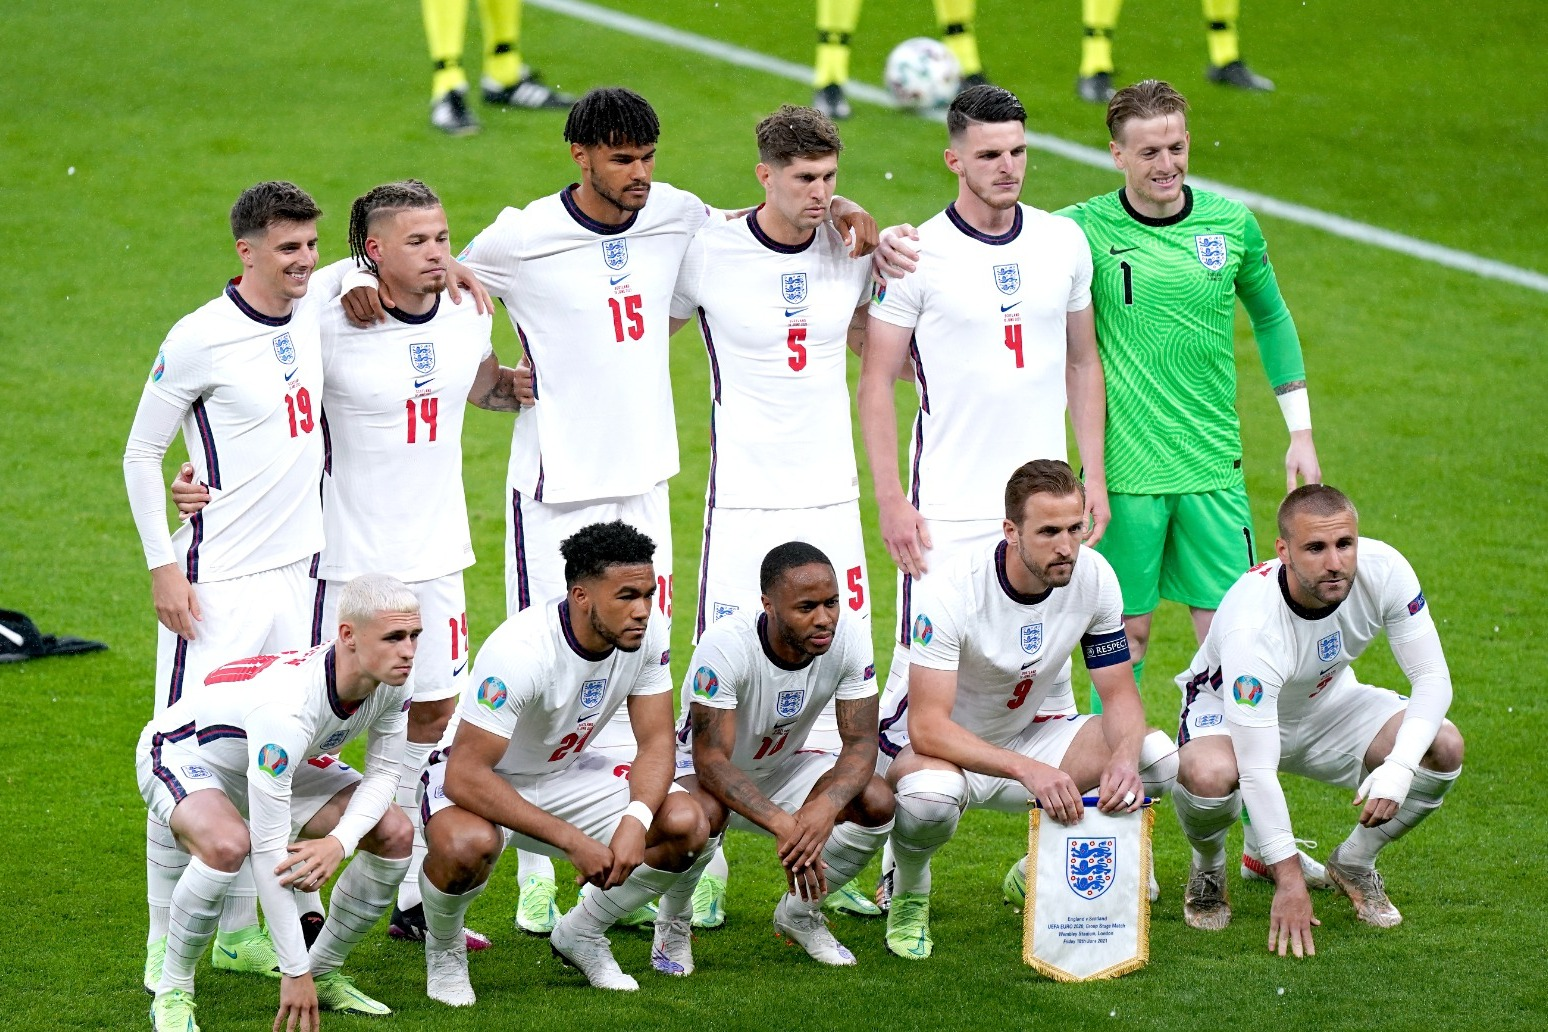 England to face Germany in next round of Euro 2020